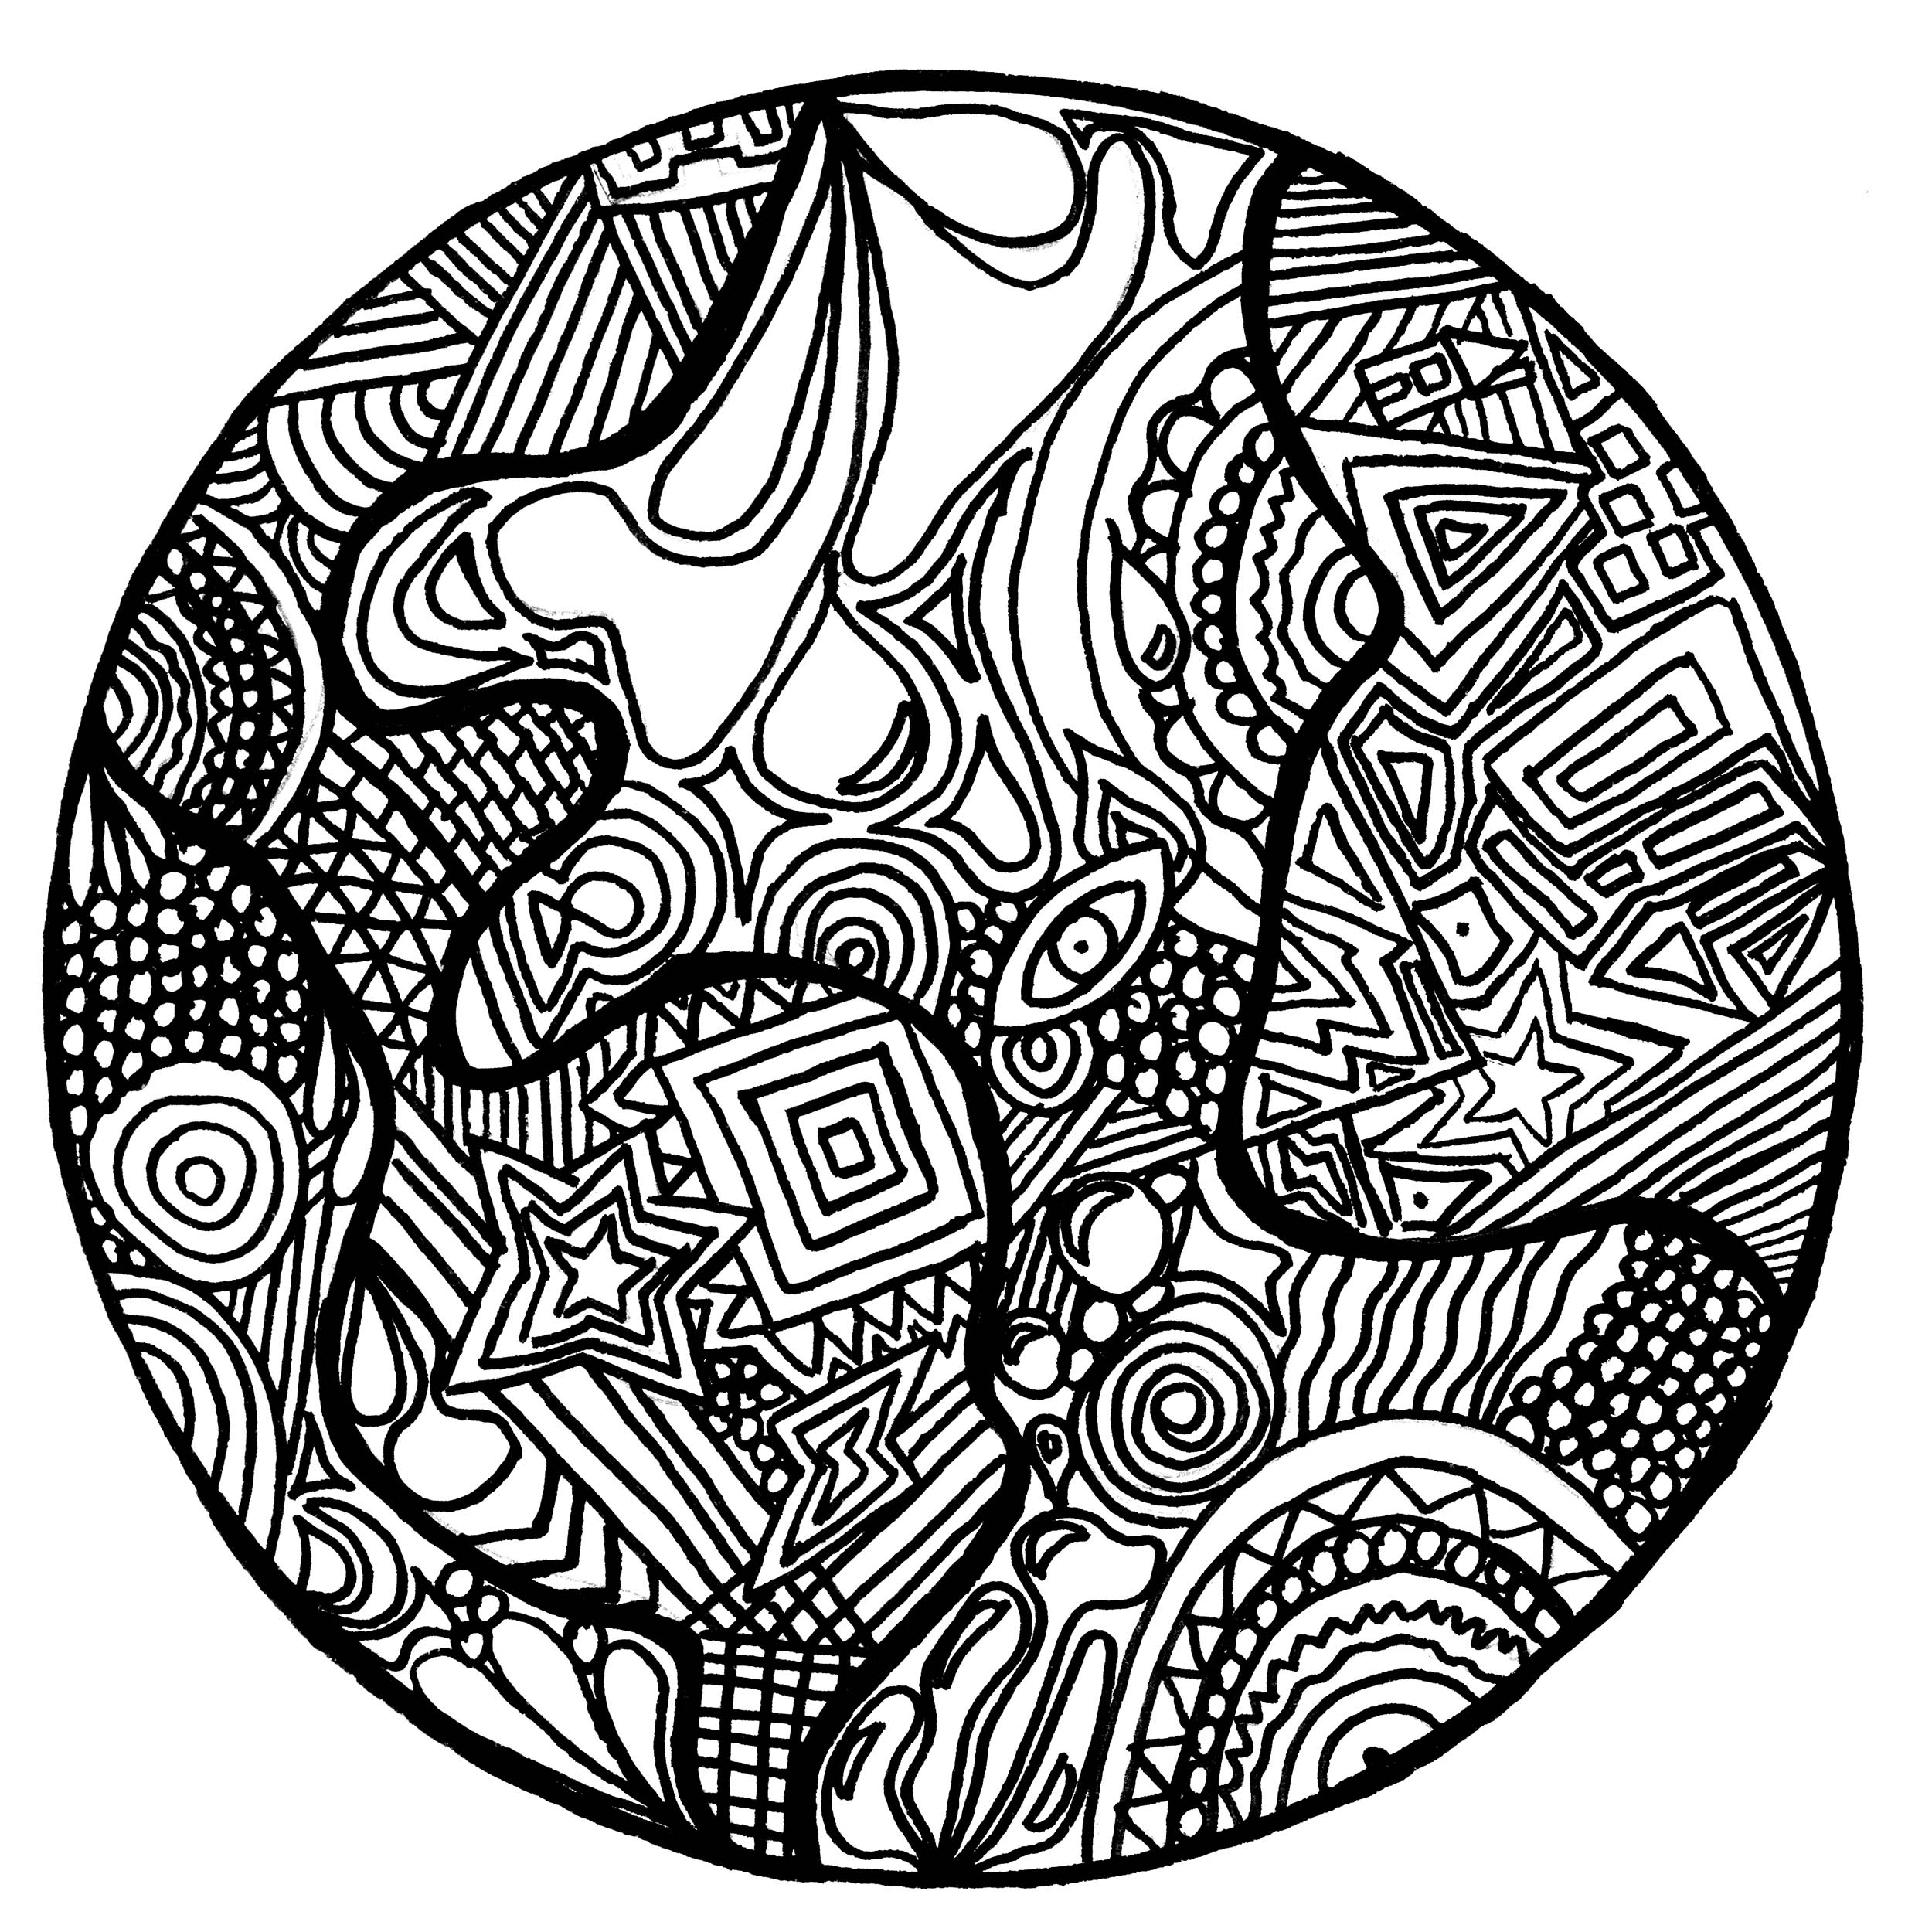 zentangle coloring pages free printable zentangle to download for free zentangle kids coloring pages pages free printable coloring zentangle